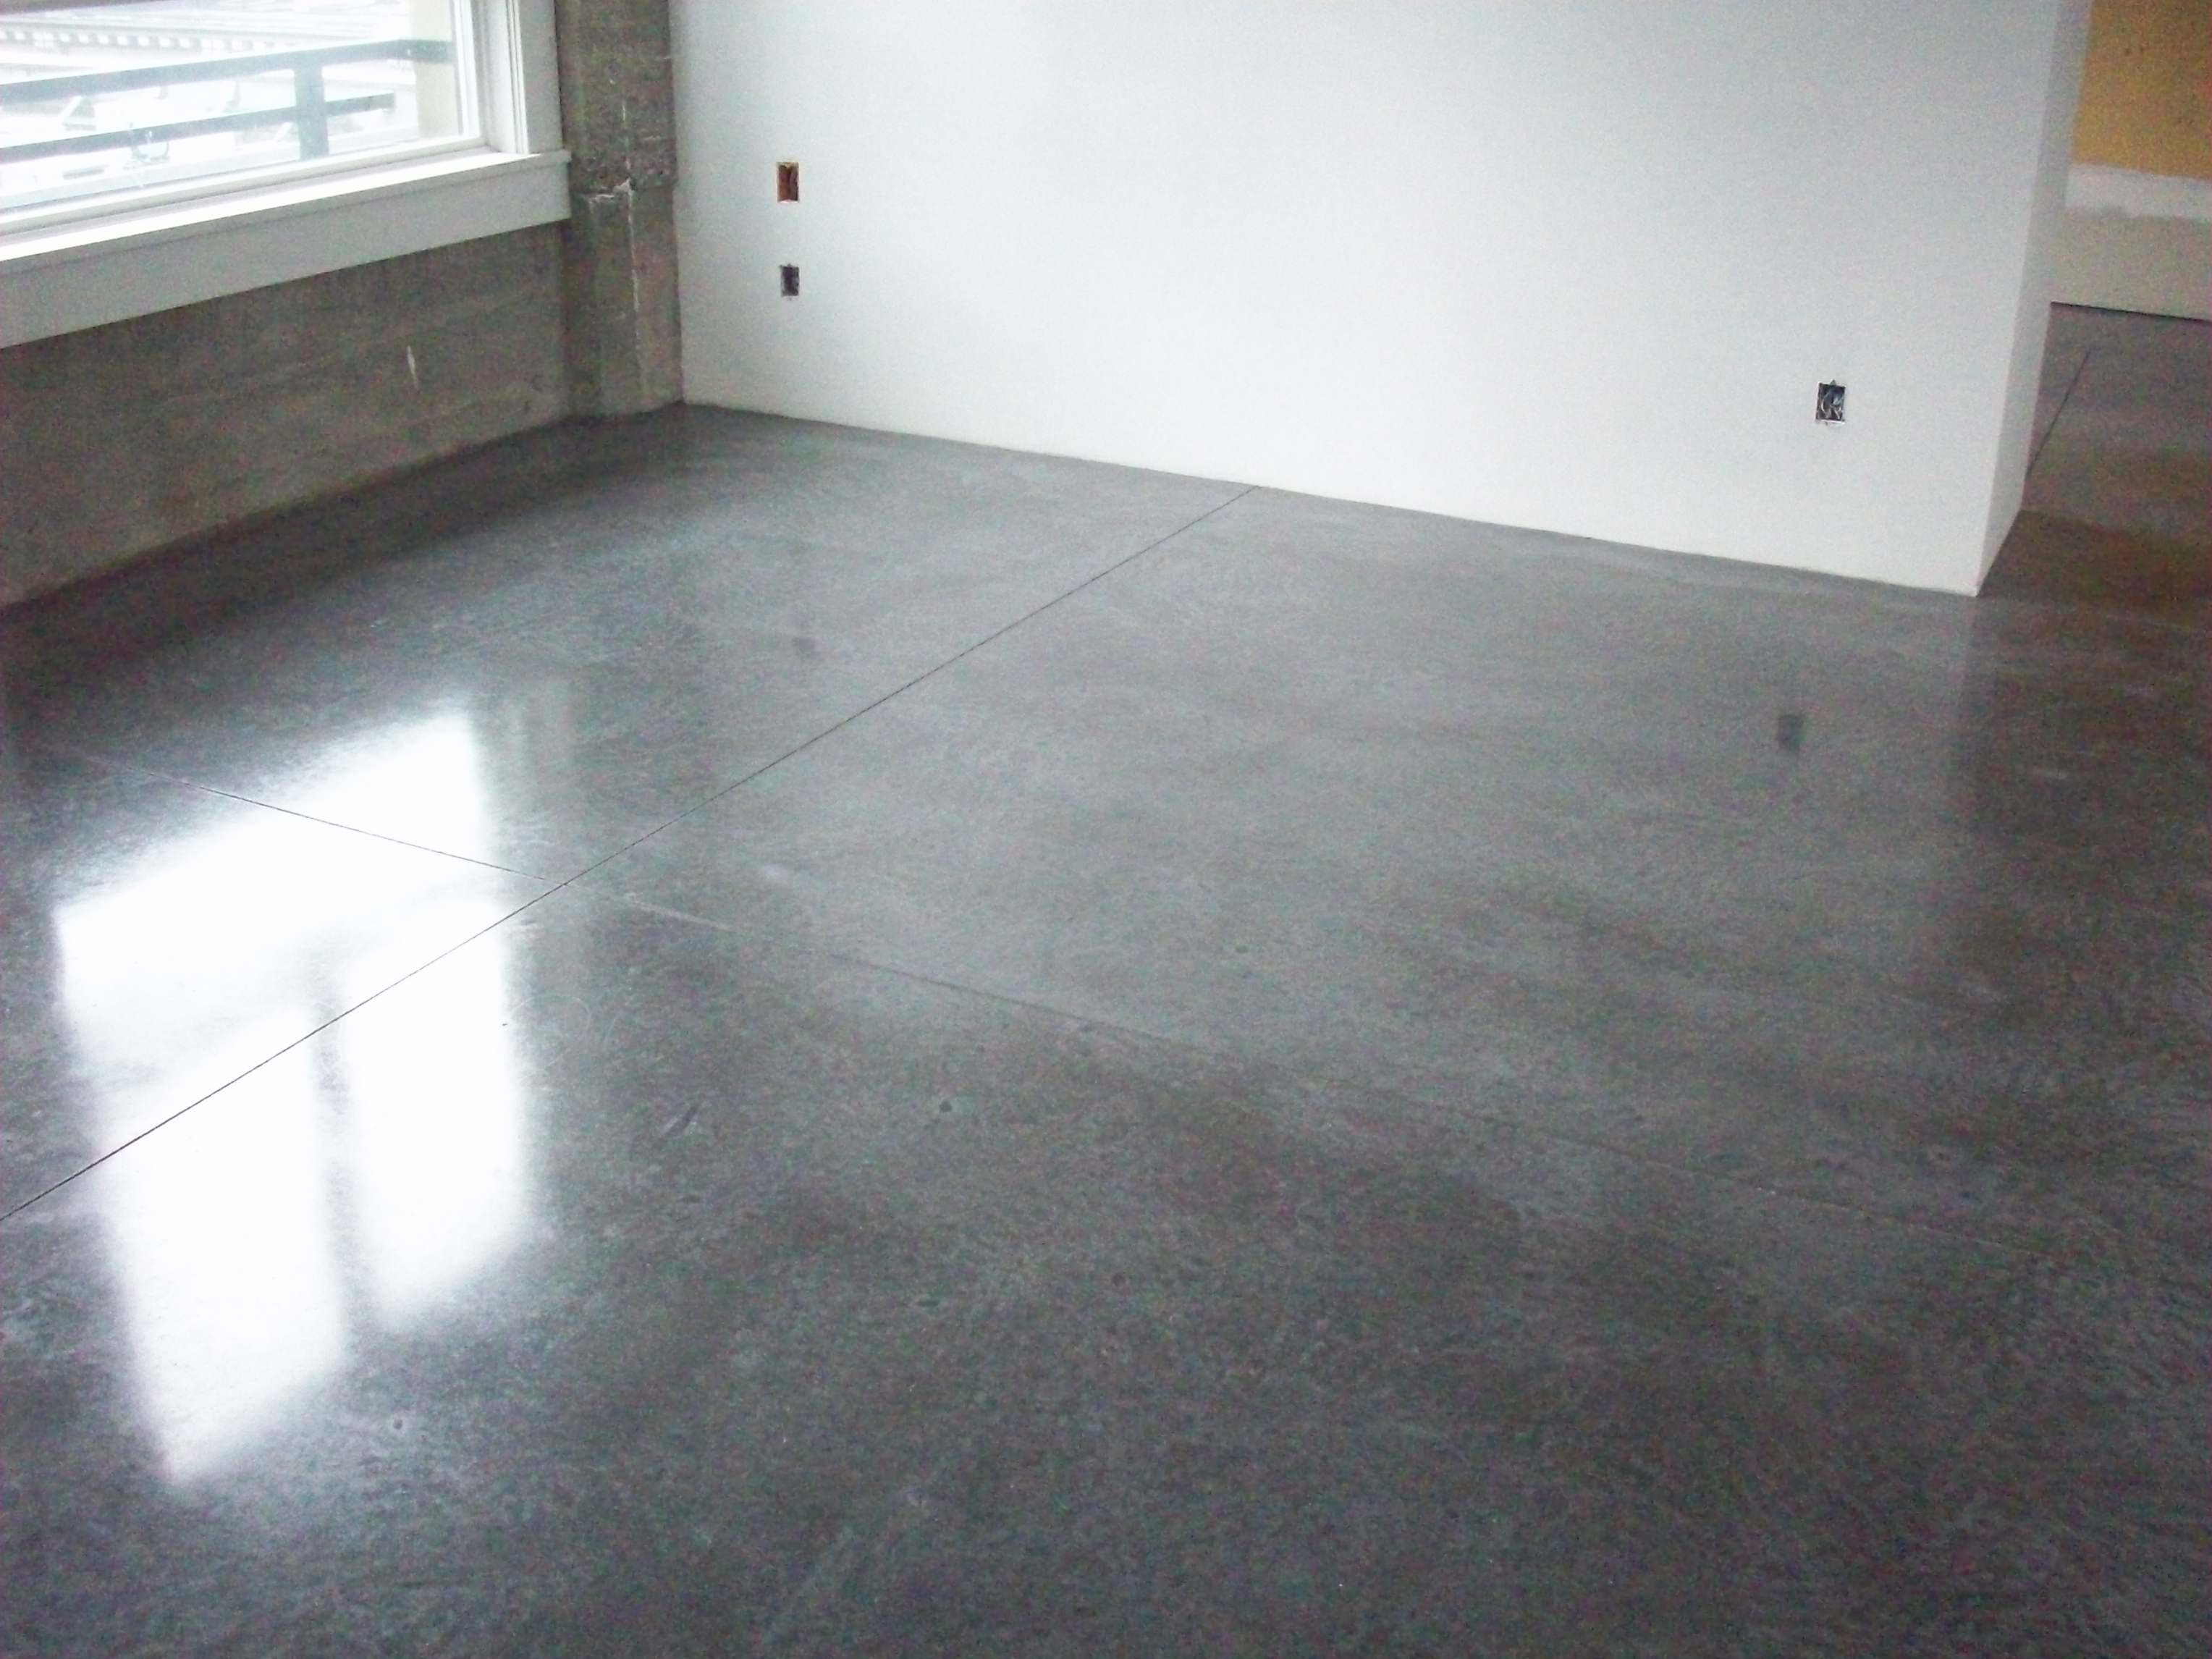 Danamac concrete 39 s blog just another weblog for Flooring for concrete